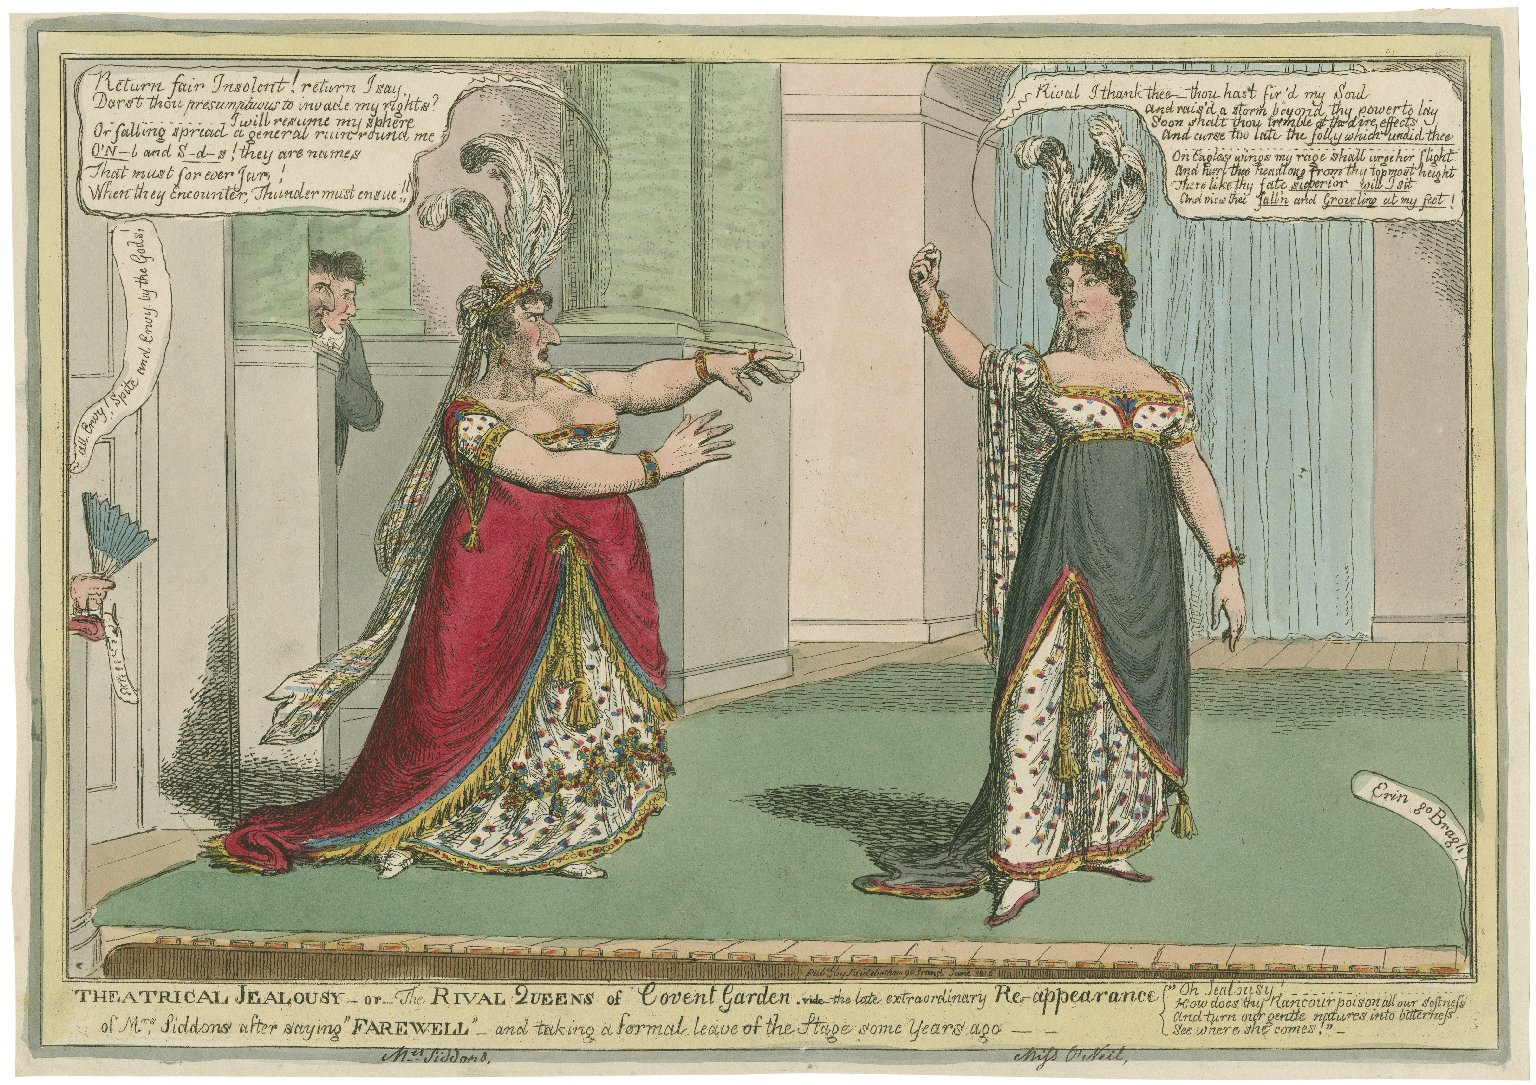 """Theatrical jealousy, or, the rival queens of Covent Garden : [graphic] vide the late extraordinary re-appearance of Mrs. Siddons after saying """"farewell"""" and taking a formal leave of the stage some years ago."""